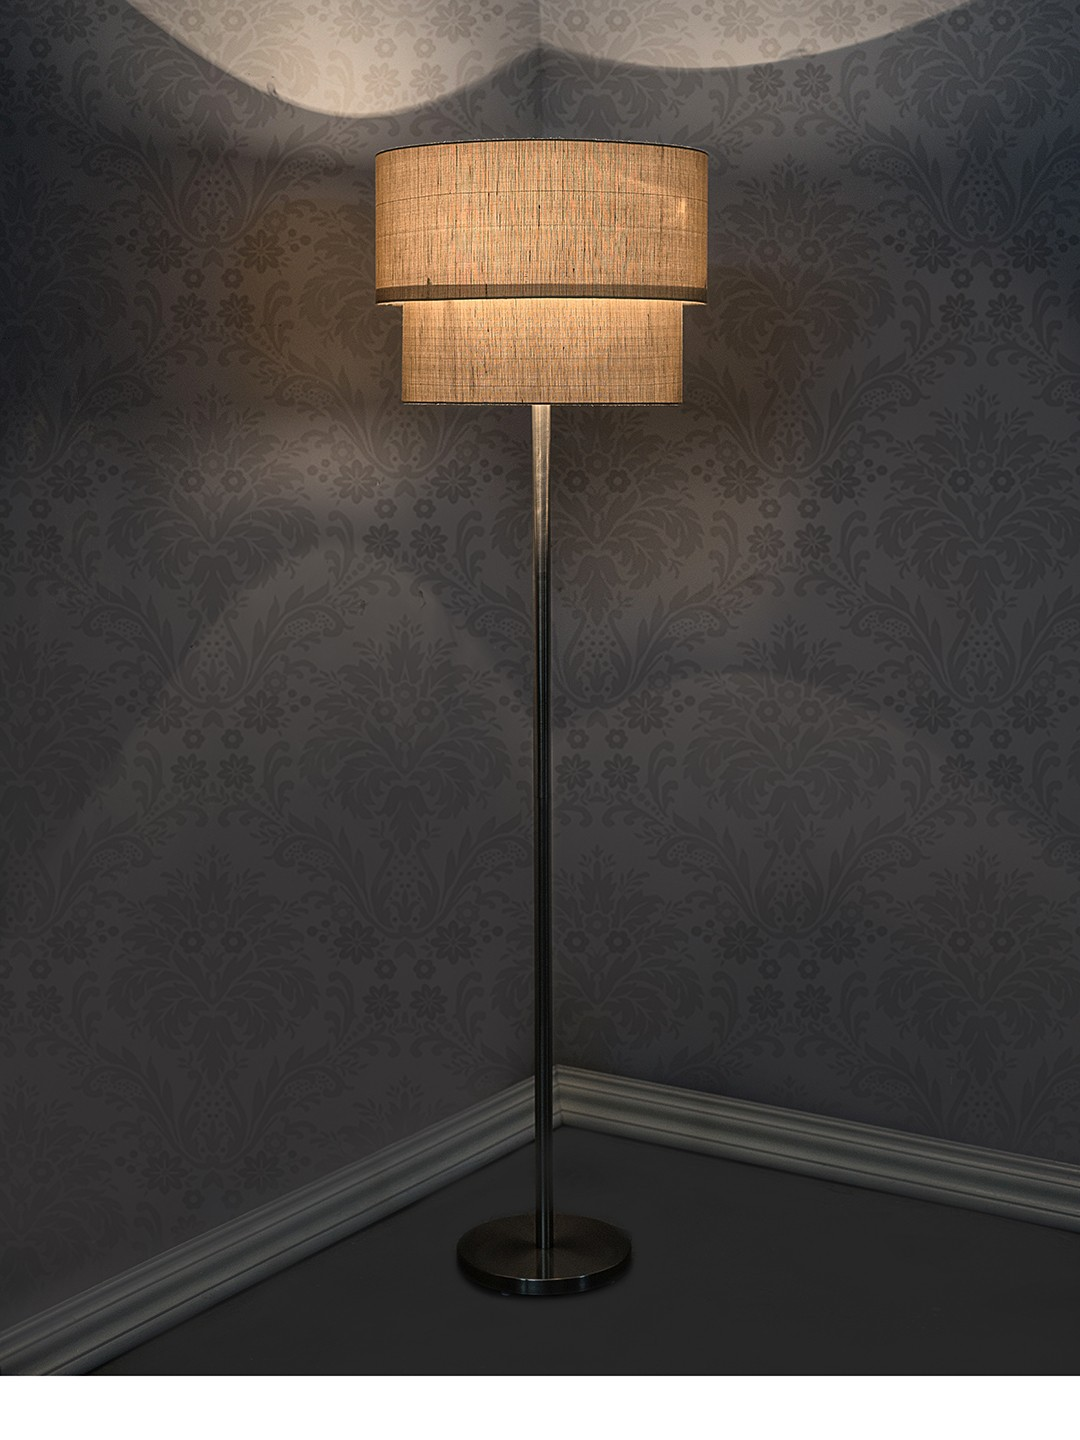 Double Drum Tan Floor Lamp - 18 inches